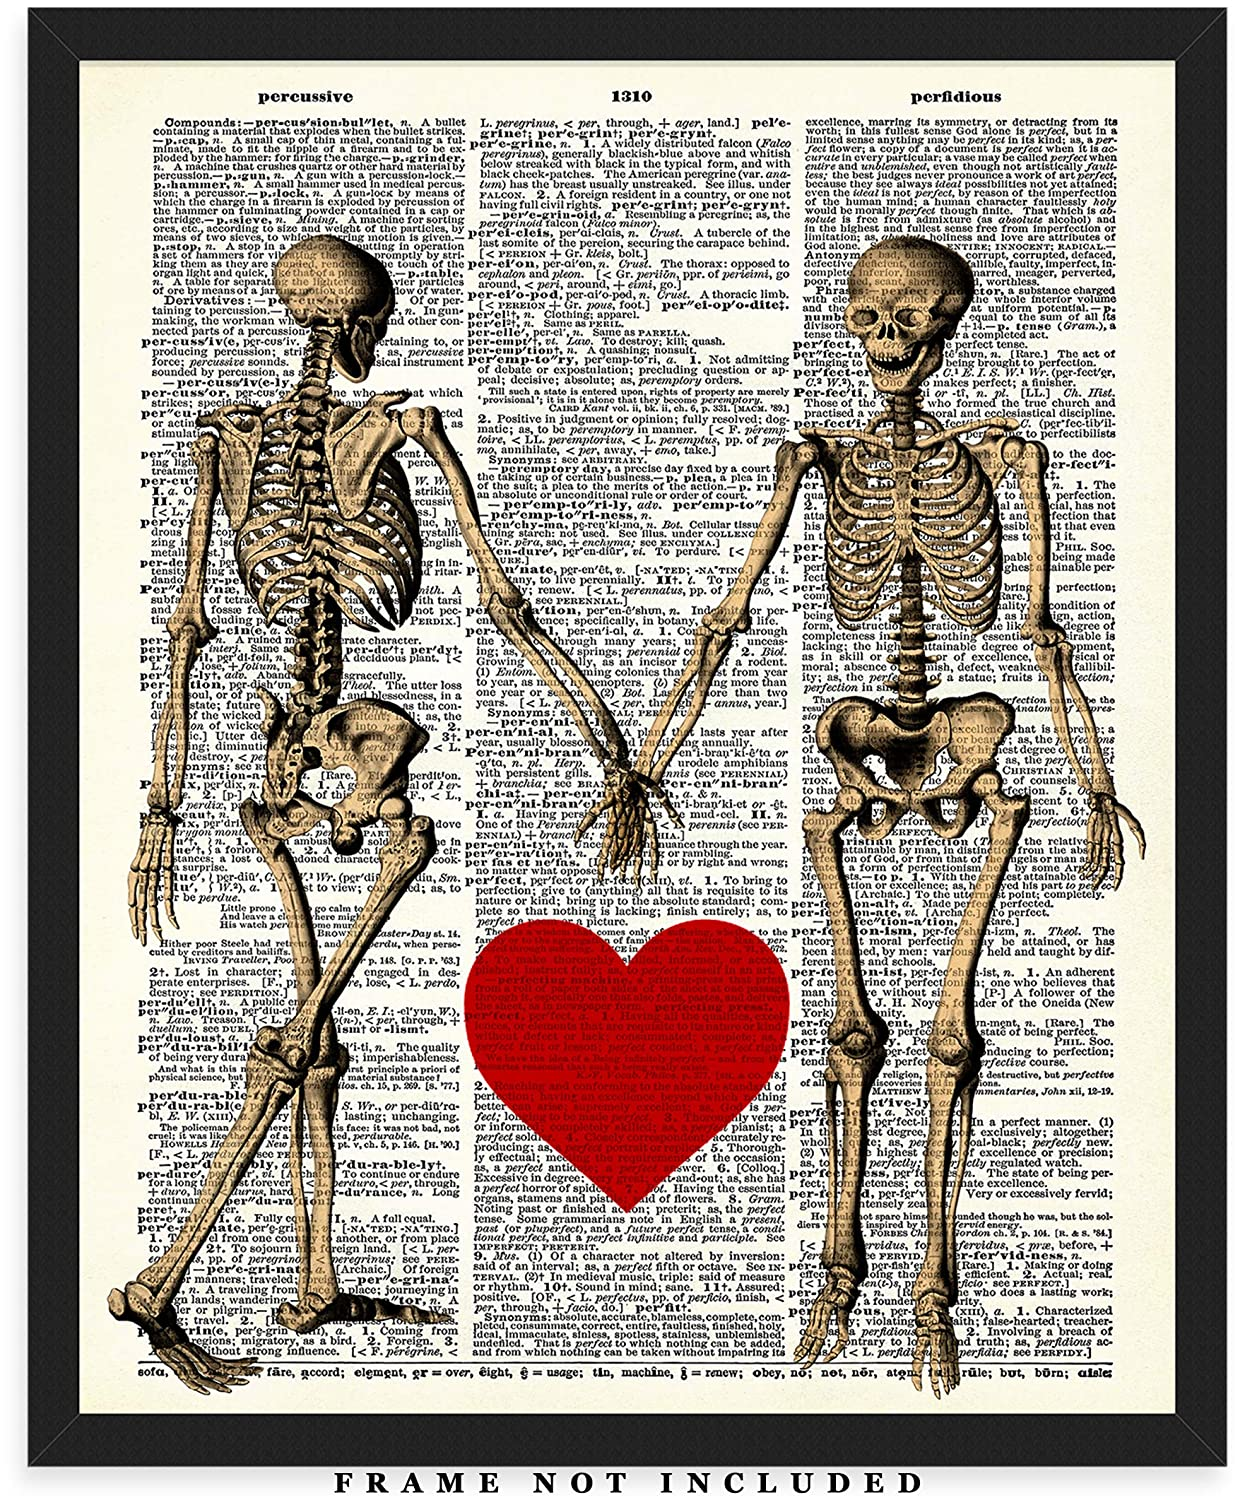 Skeletons In Love Wall Art Print: (8x10) Unframed Poster Print – Great Gift  Idea For a Significant Other or That Special Person in Your Life!